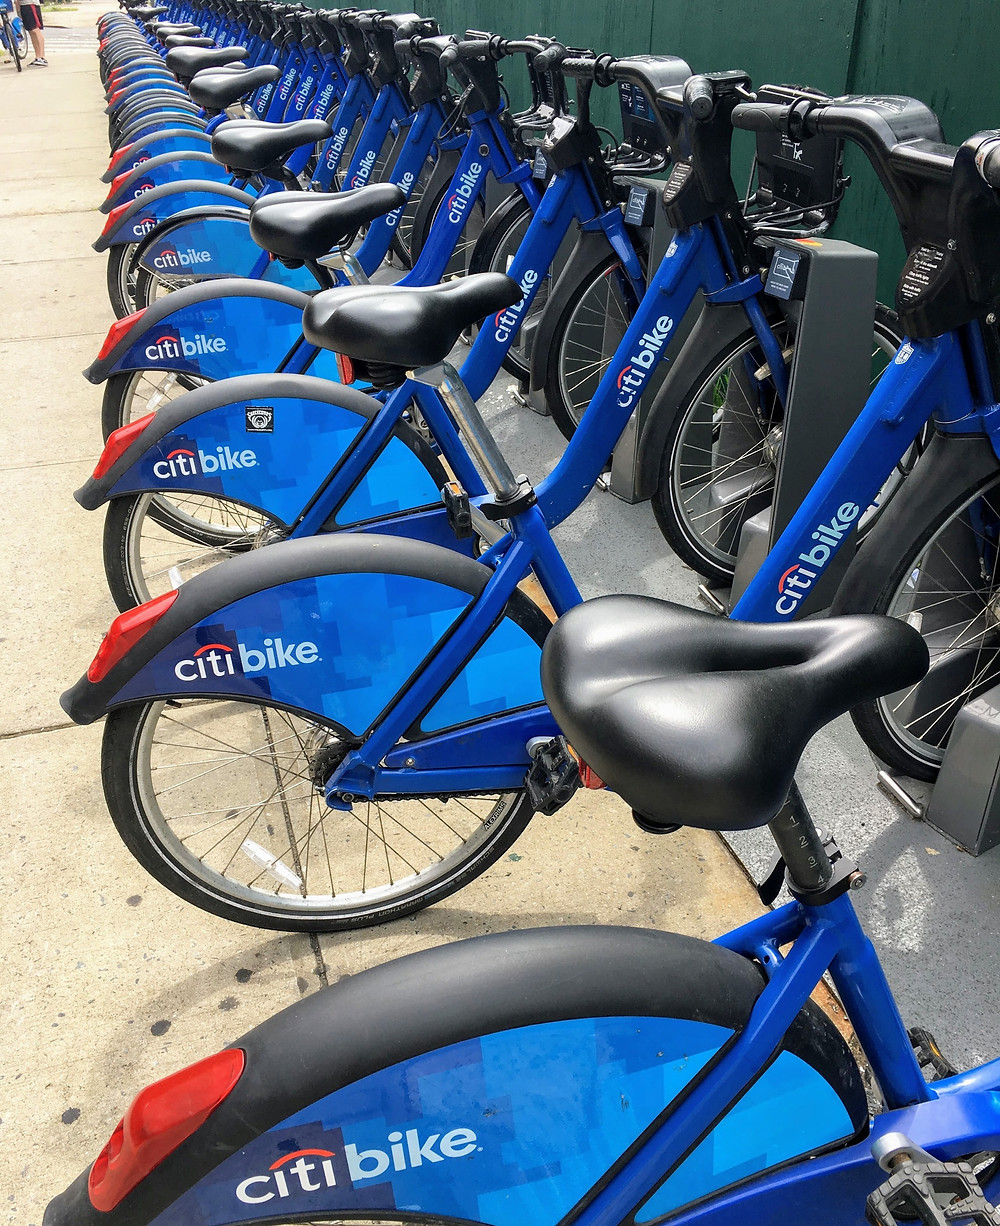 It's official: Citi Bike is expanding to Upper Manhattan (Harlem, Hamilton Heights, Sugar Hill, Washington Heights and Inwood)